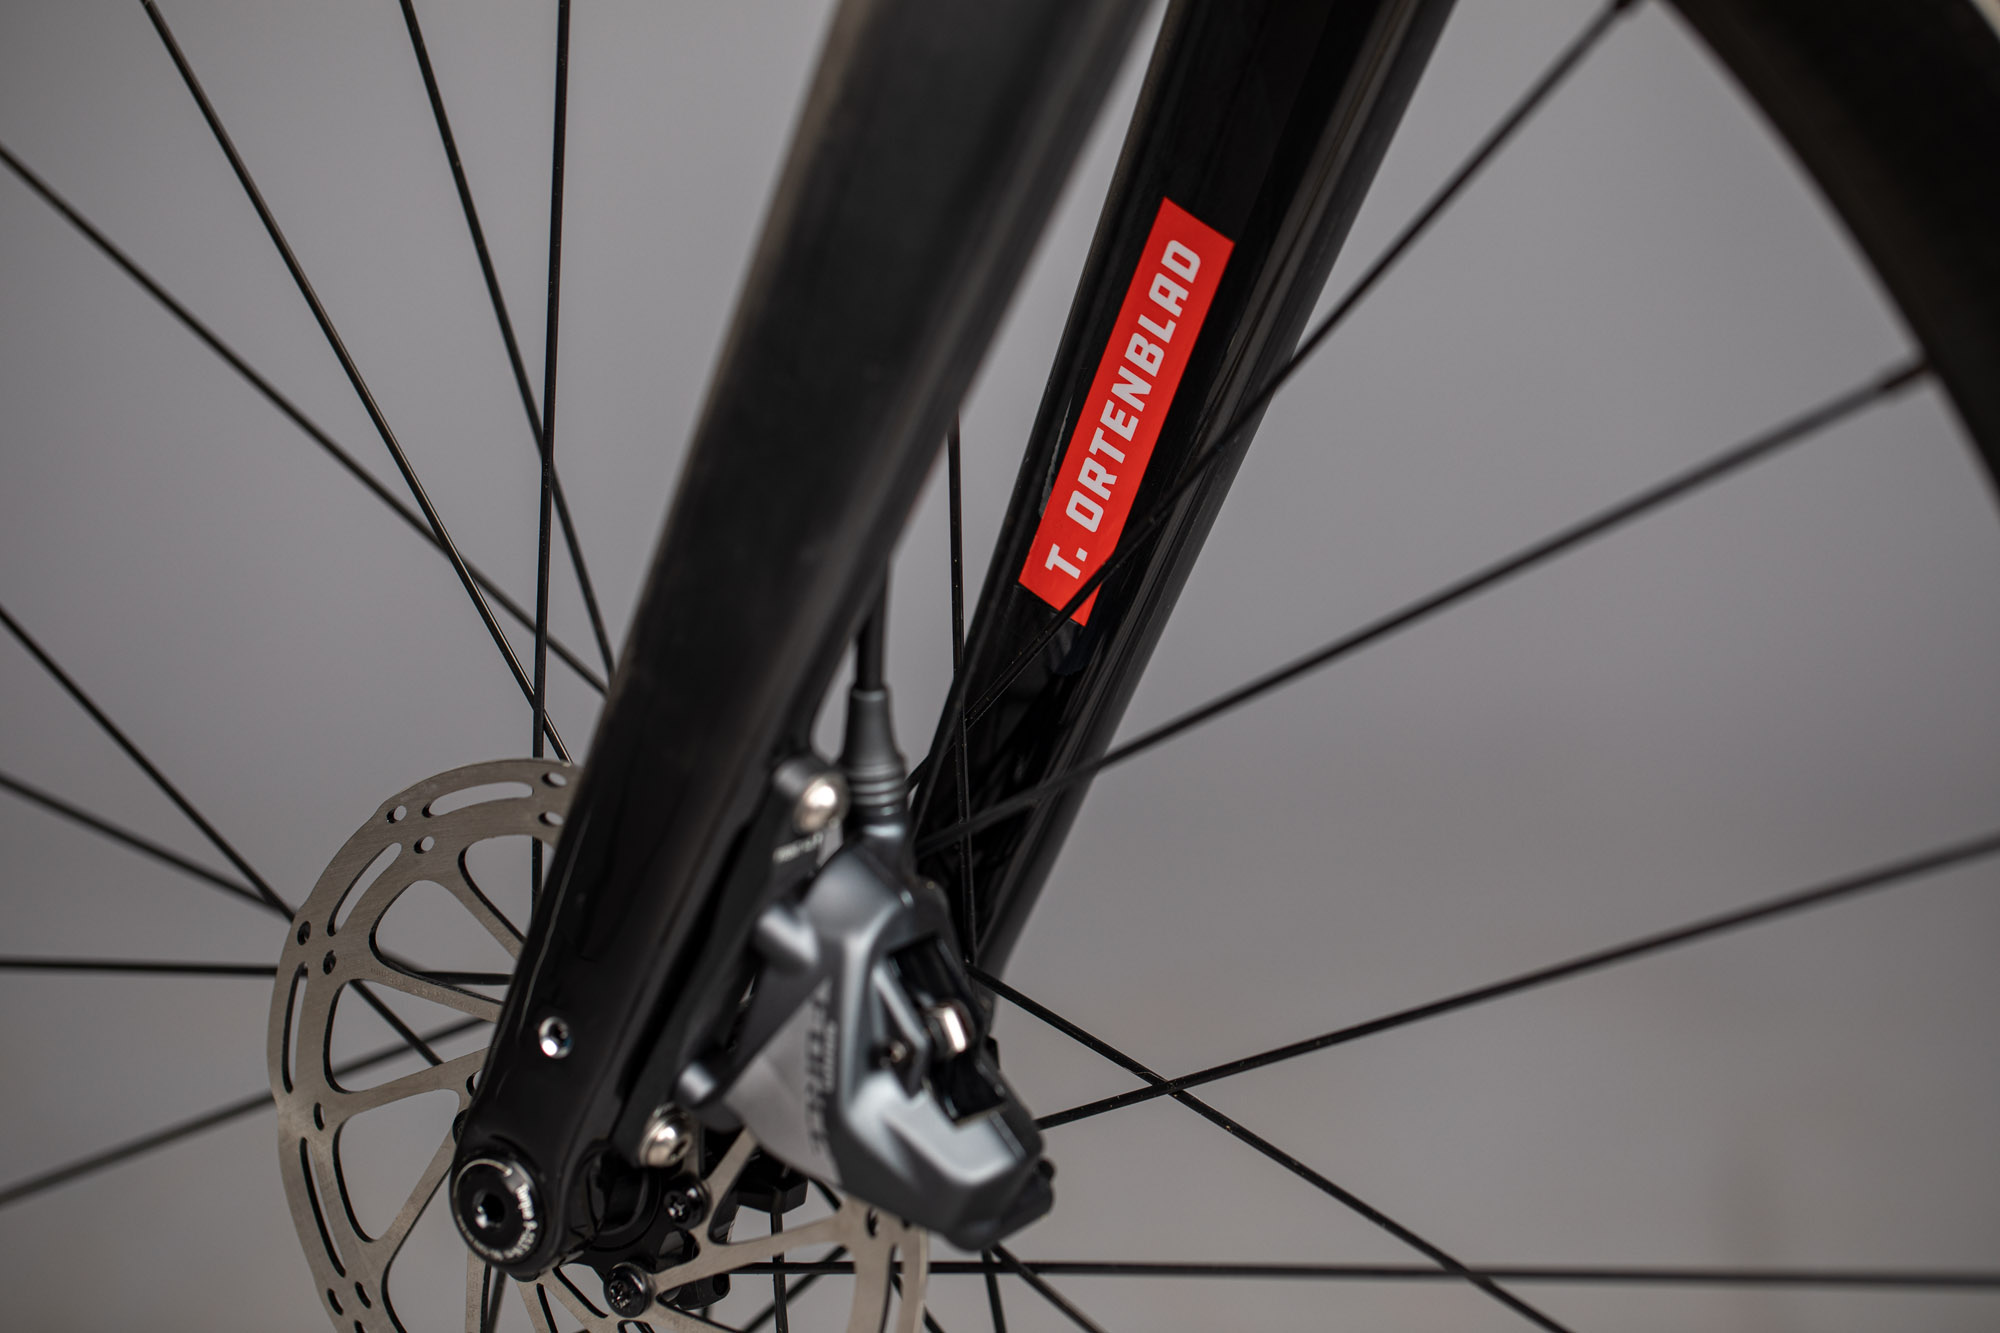 Santa Cruz Bicycles - Tobin Ortenblad's Custom Stigmata Cyclocross Race Bike - Fork Detail